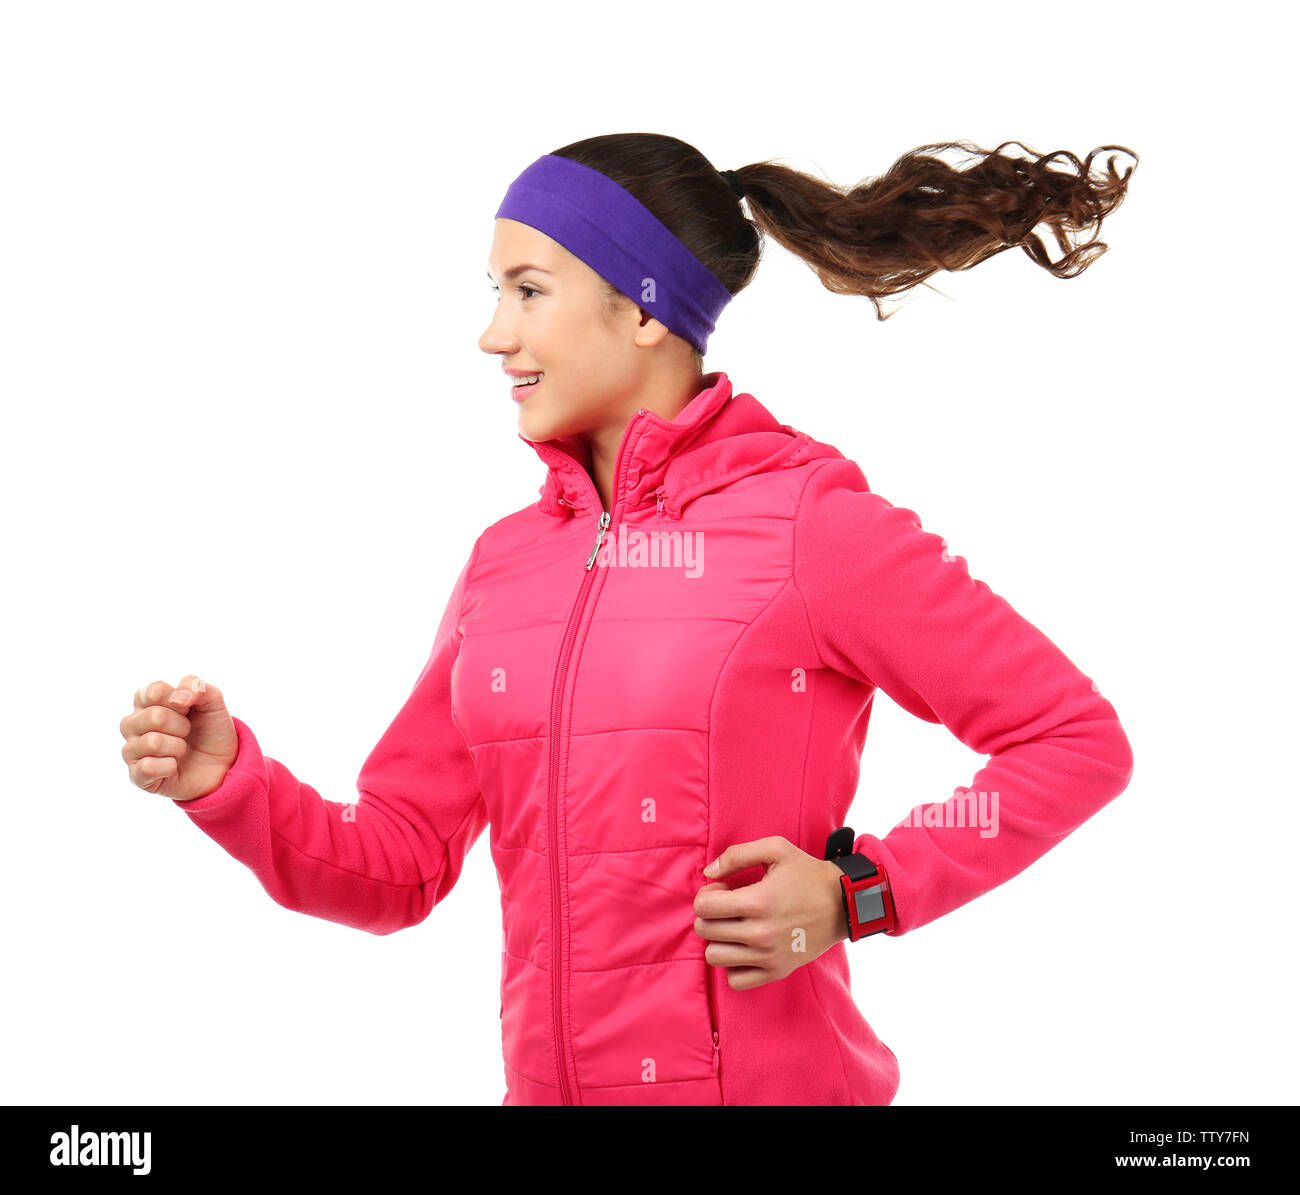 Running young woman in warm clothes on white background - Stock Image